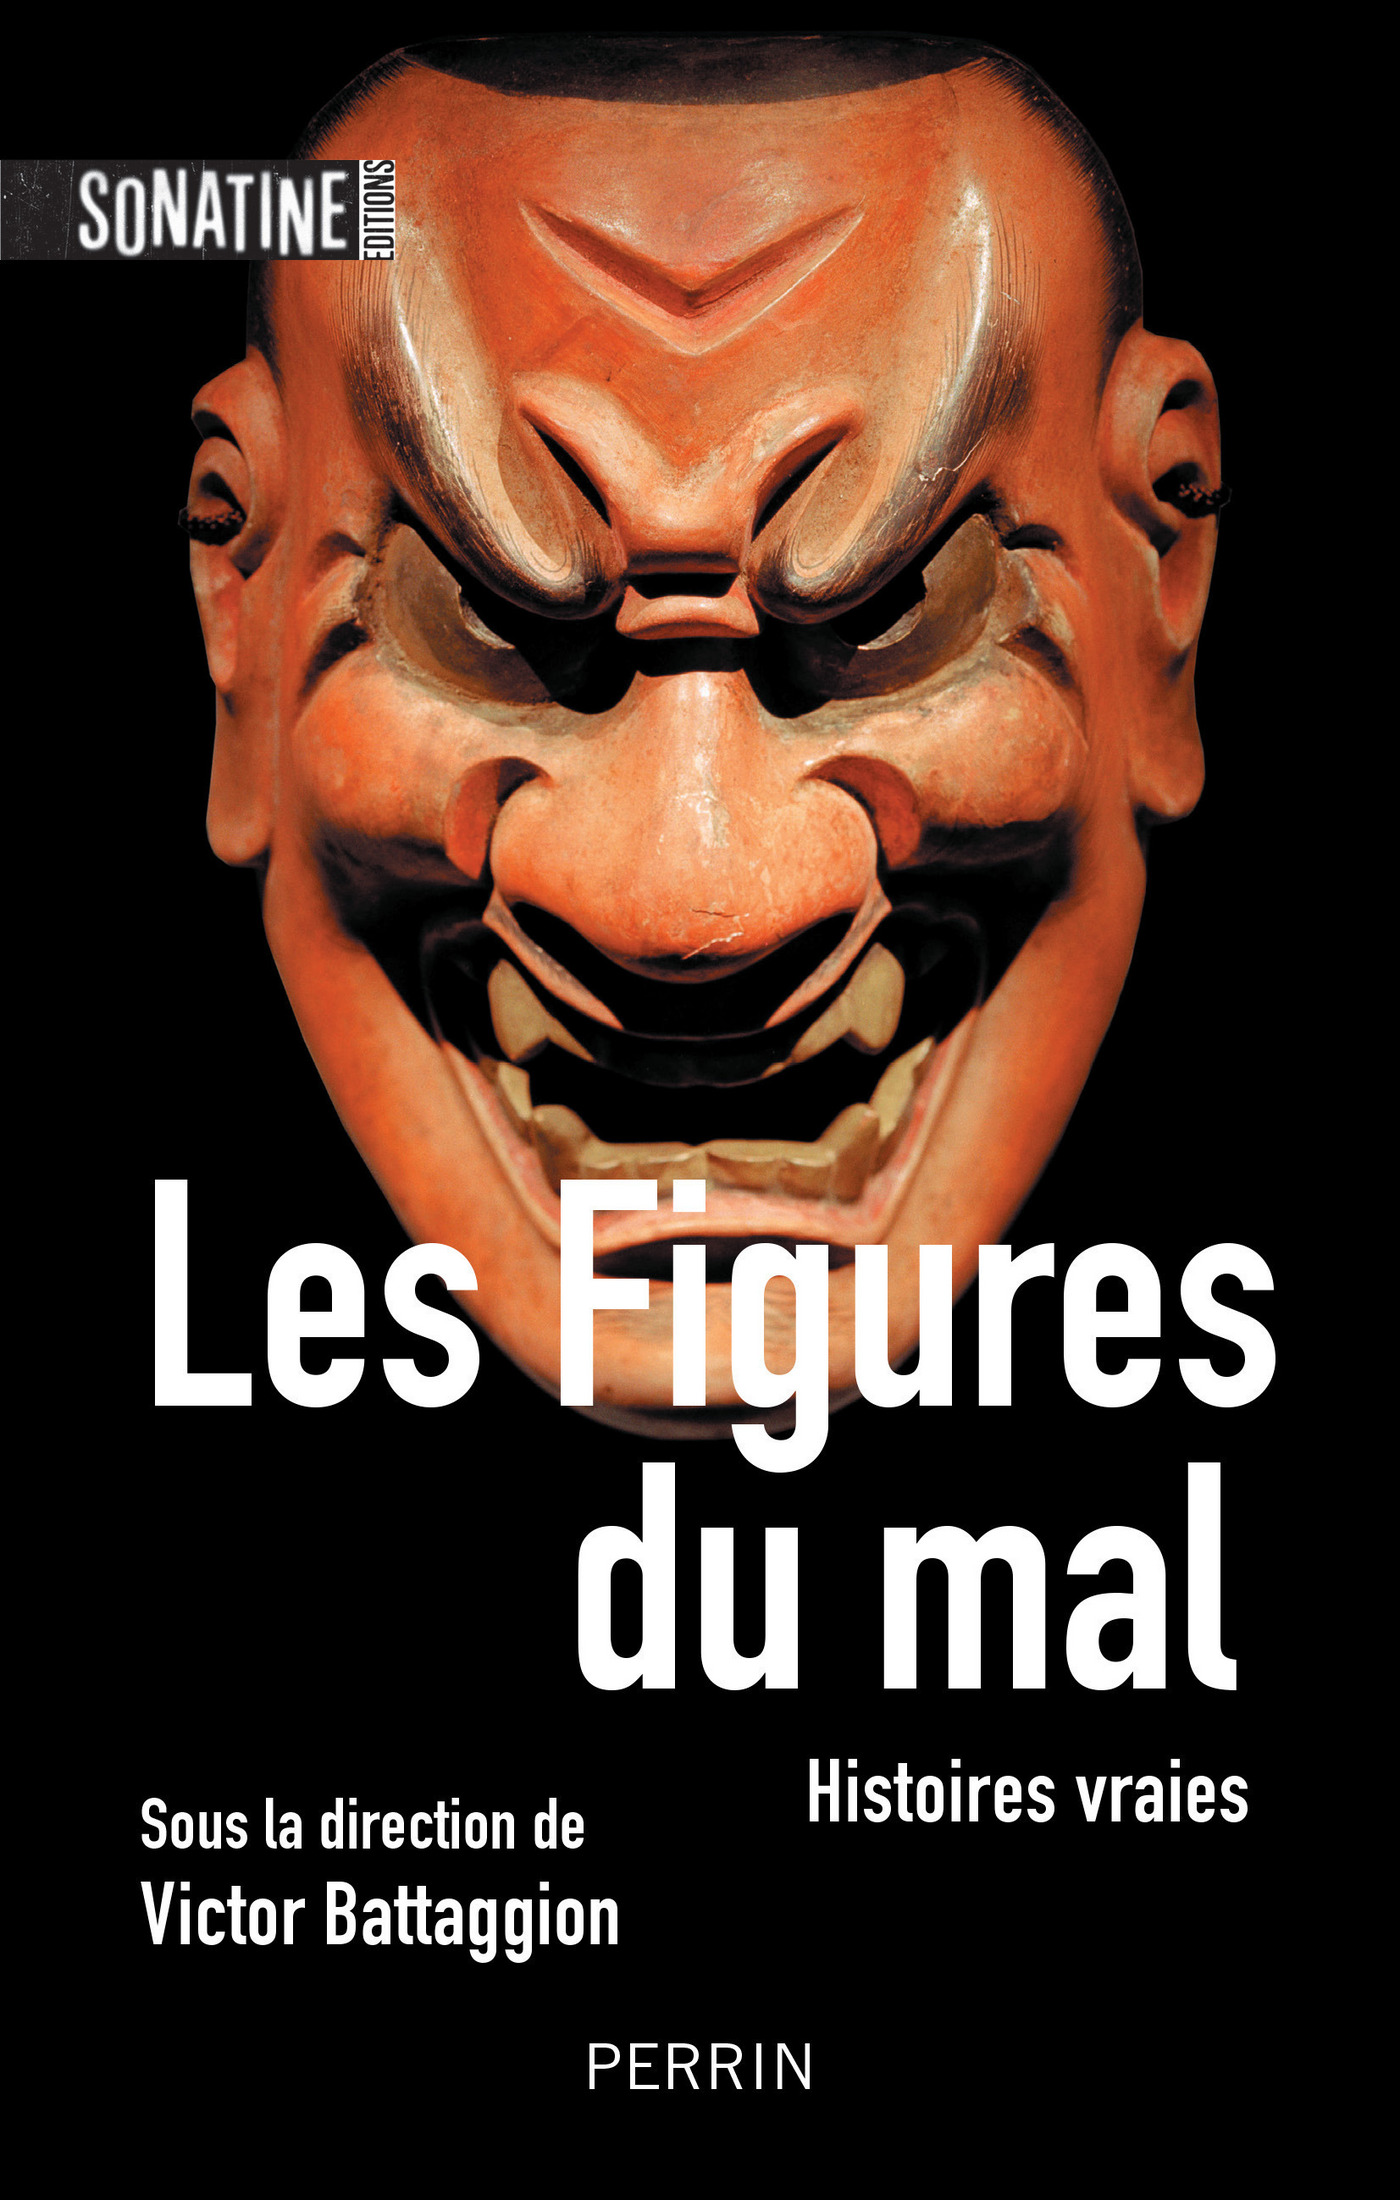 Les Figures du mal | COLLECTIF,